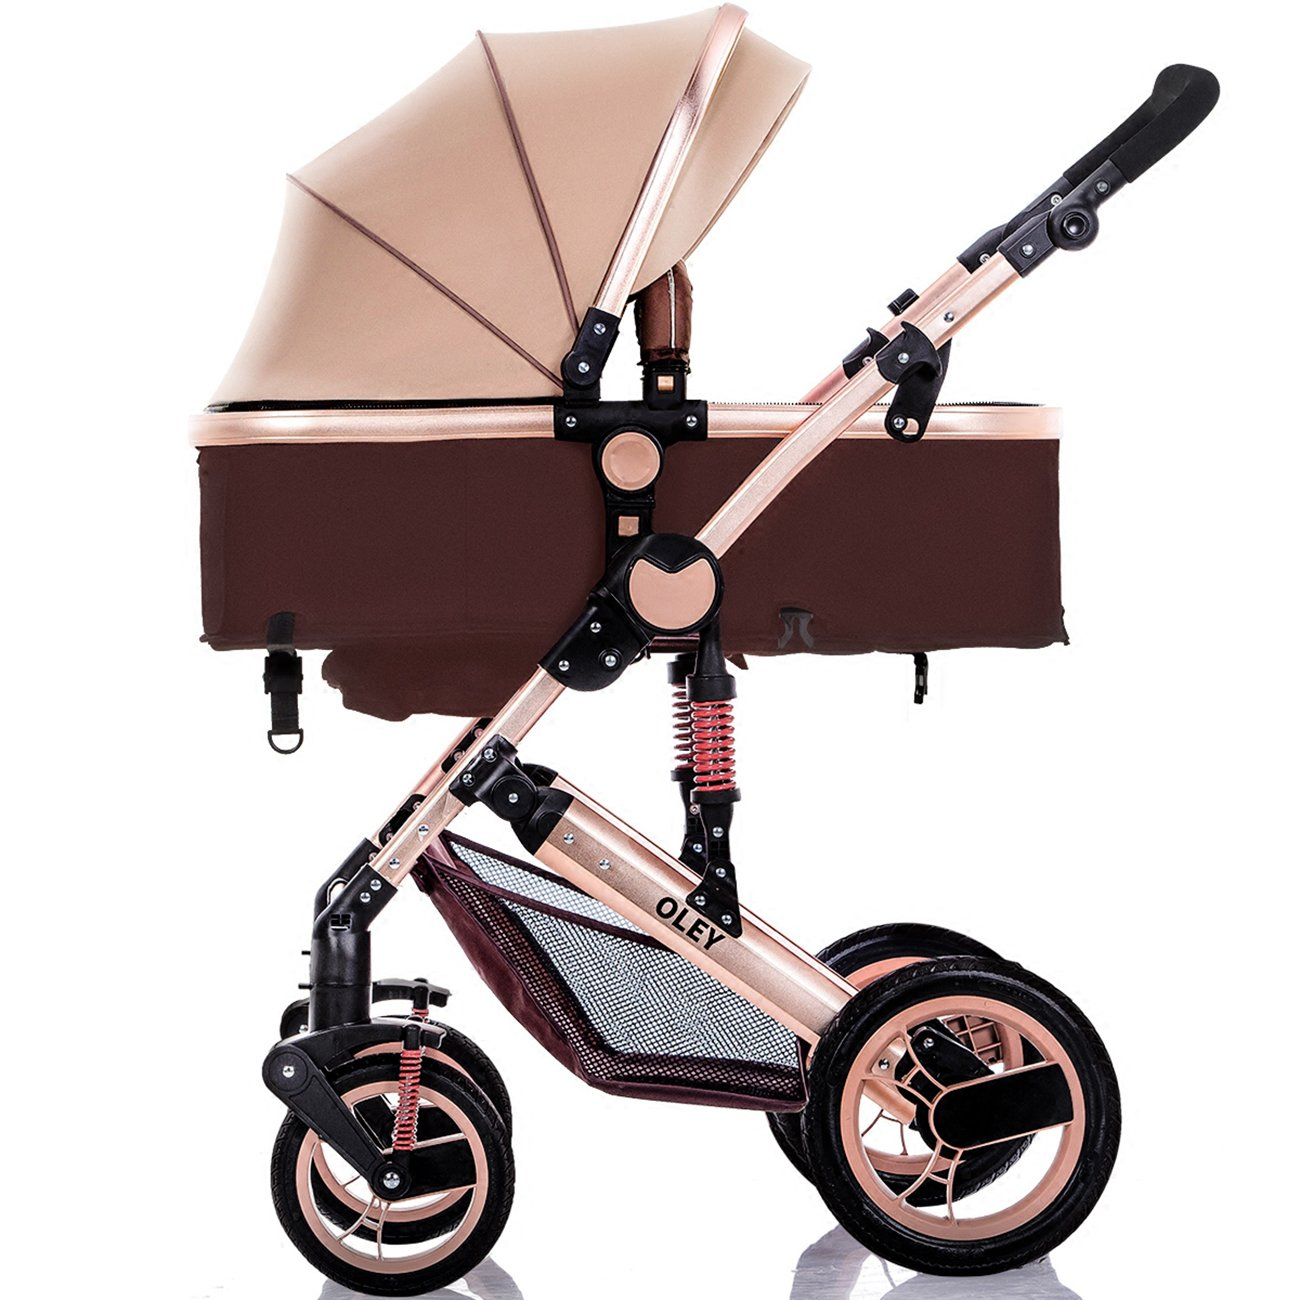 YBL High landscape Baby stroller Four rounds folding stroller Can sit Can lie down Four seasons available Newborn car Suitable for 0-3 years old